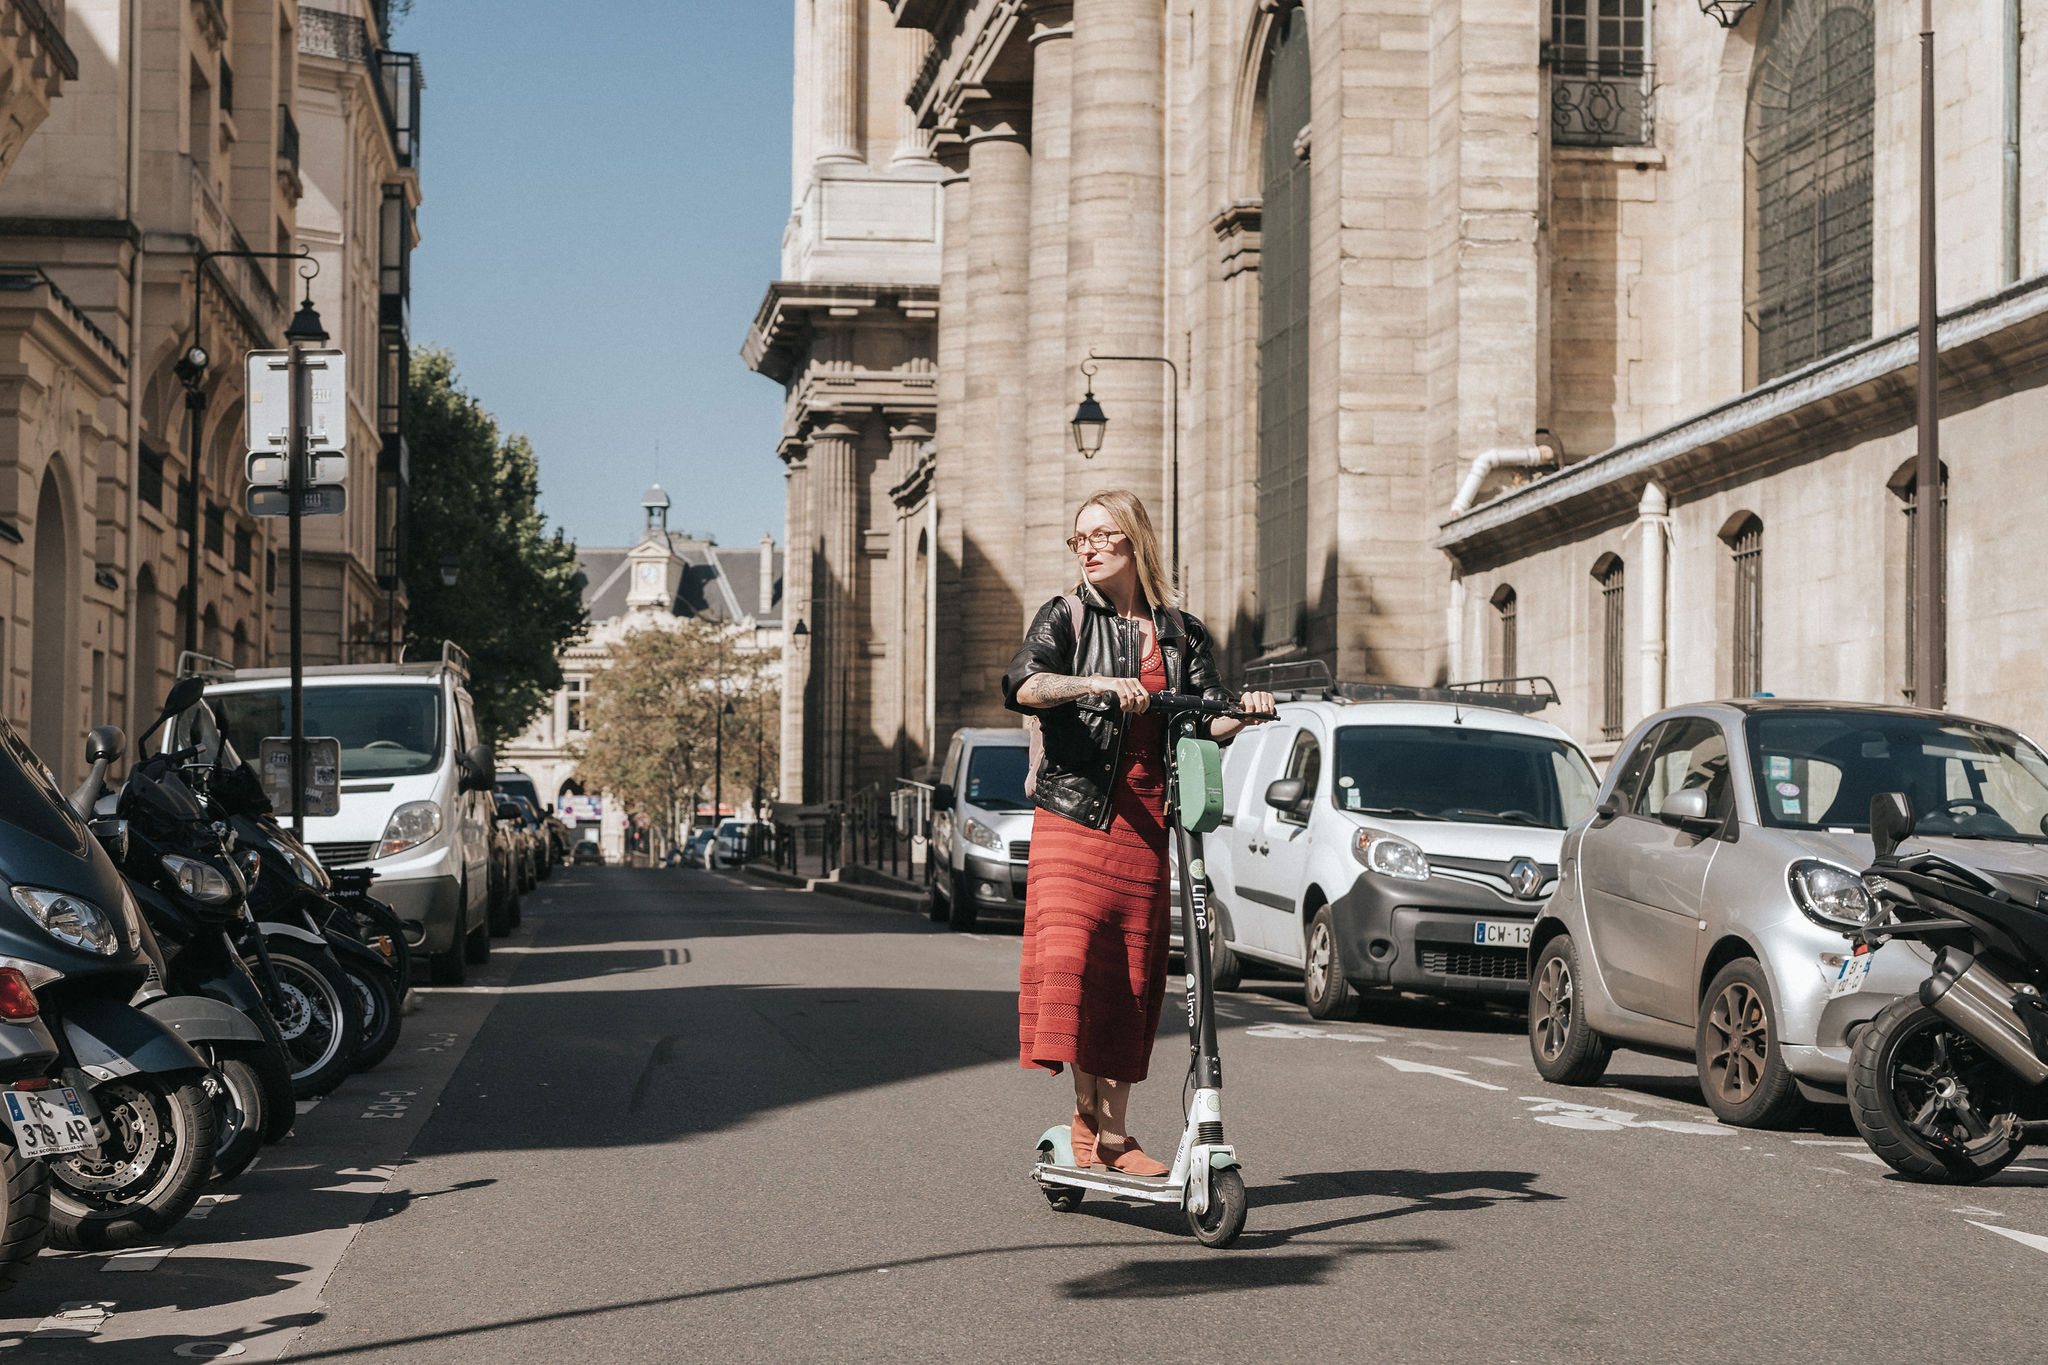 Paris Electric Scooter Rental Review by Iheartparis photographer.jpg